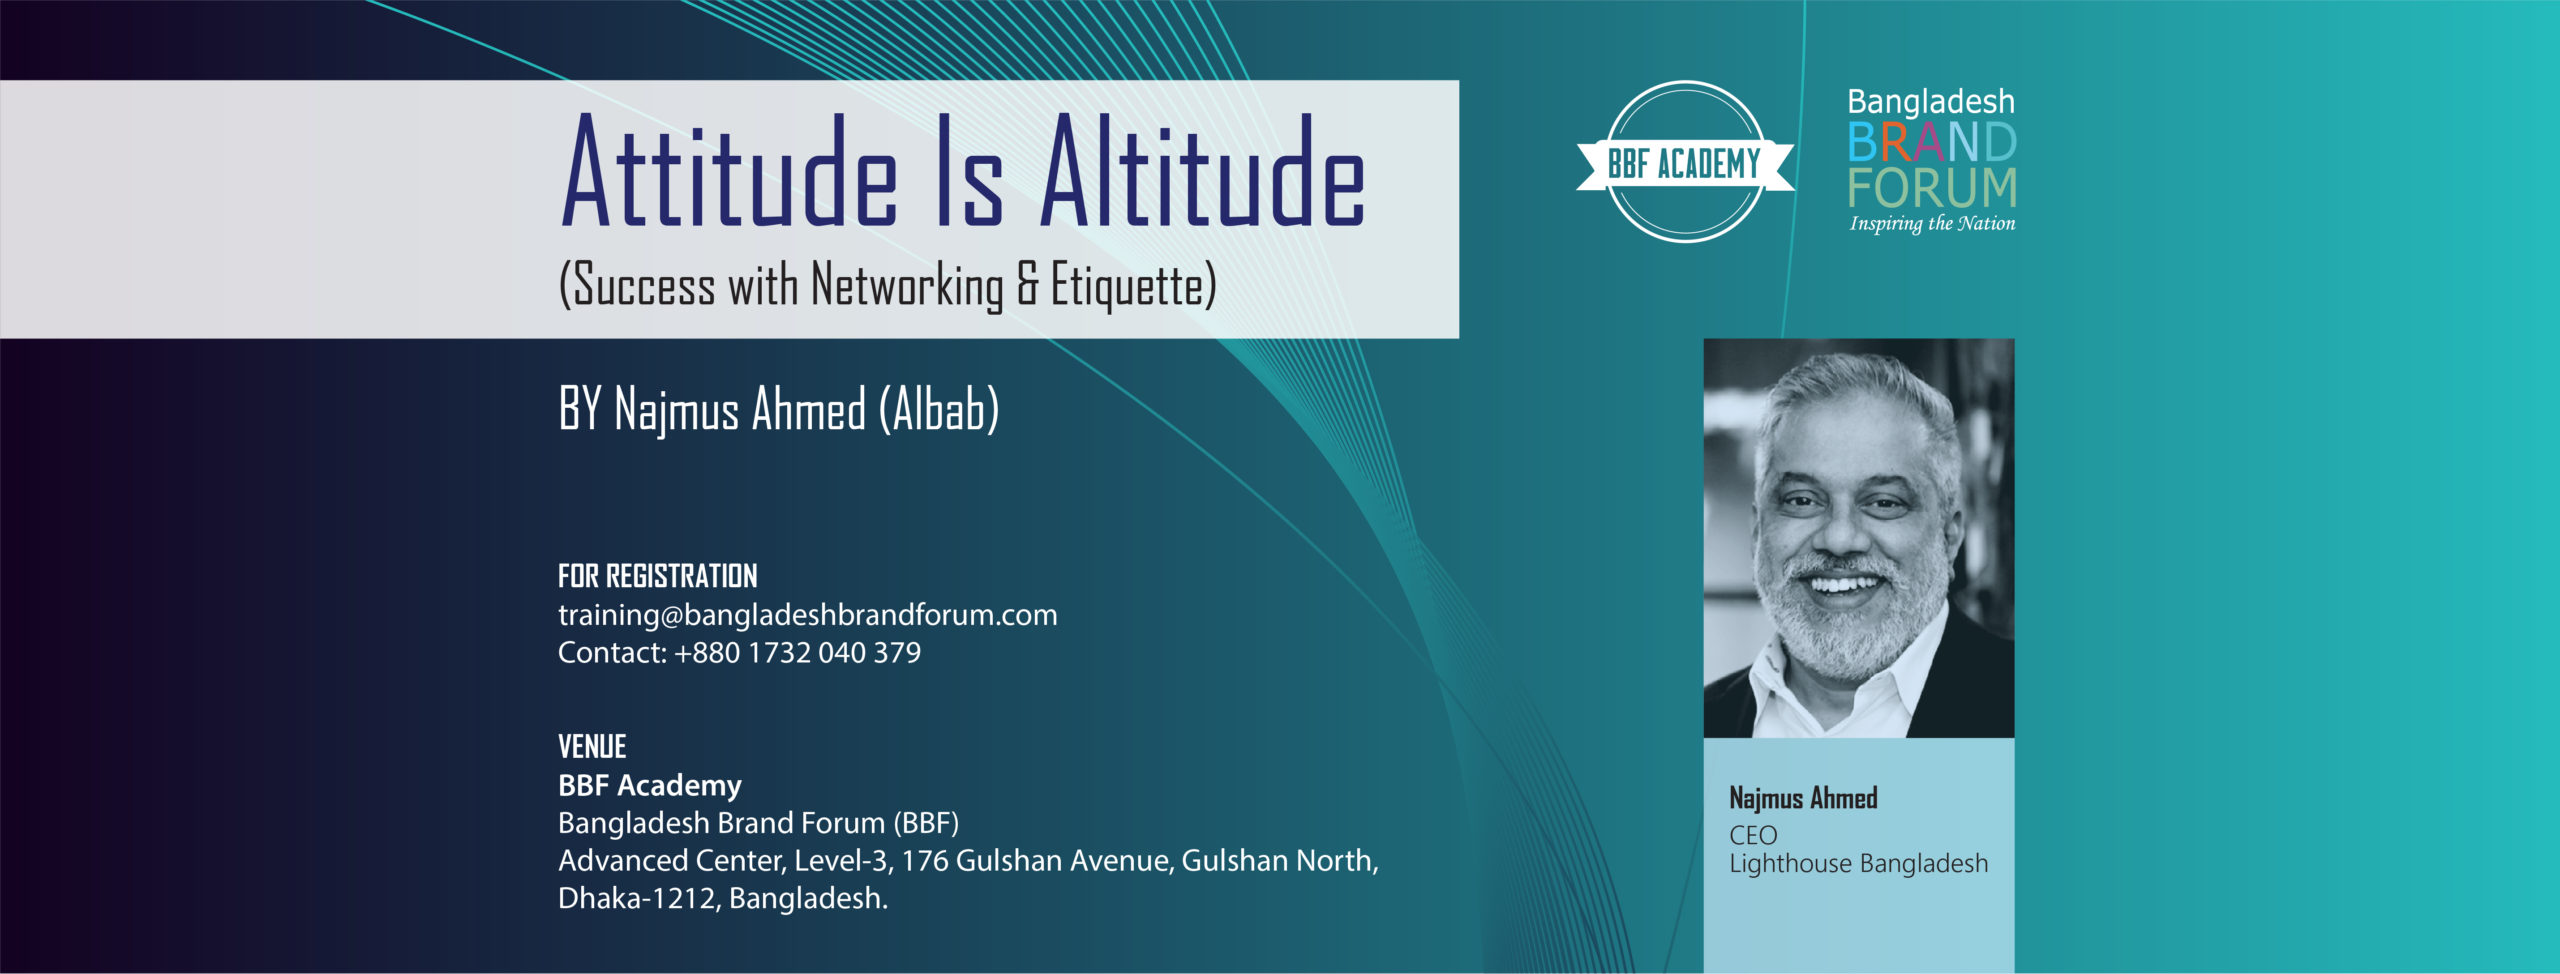 Attitude Is Altitude (Success with Networking & Etiquette)